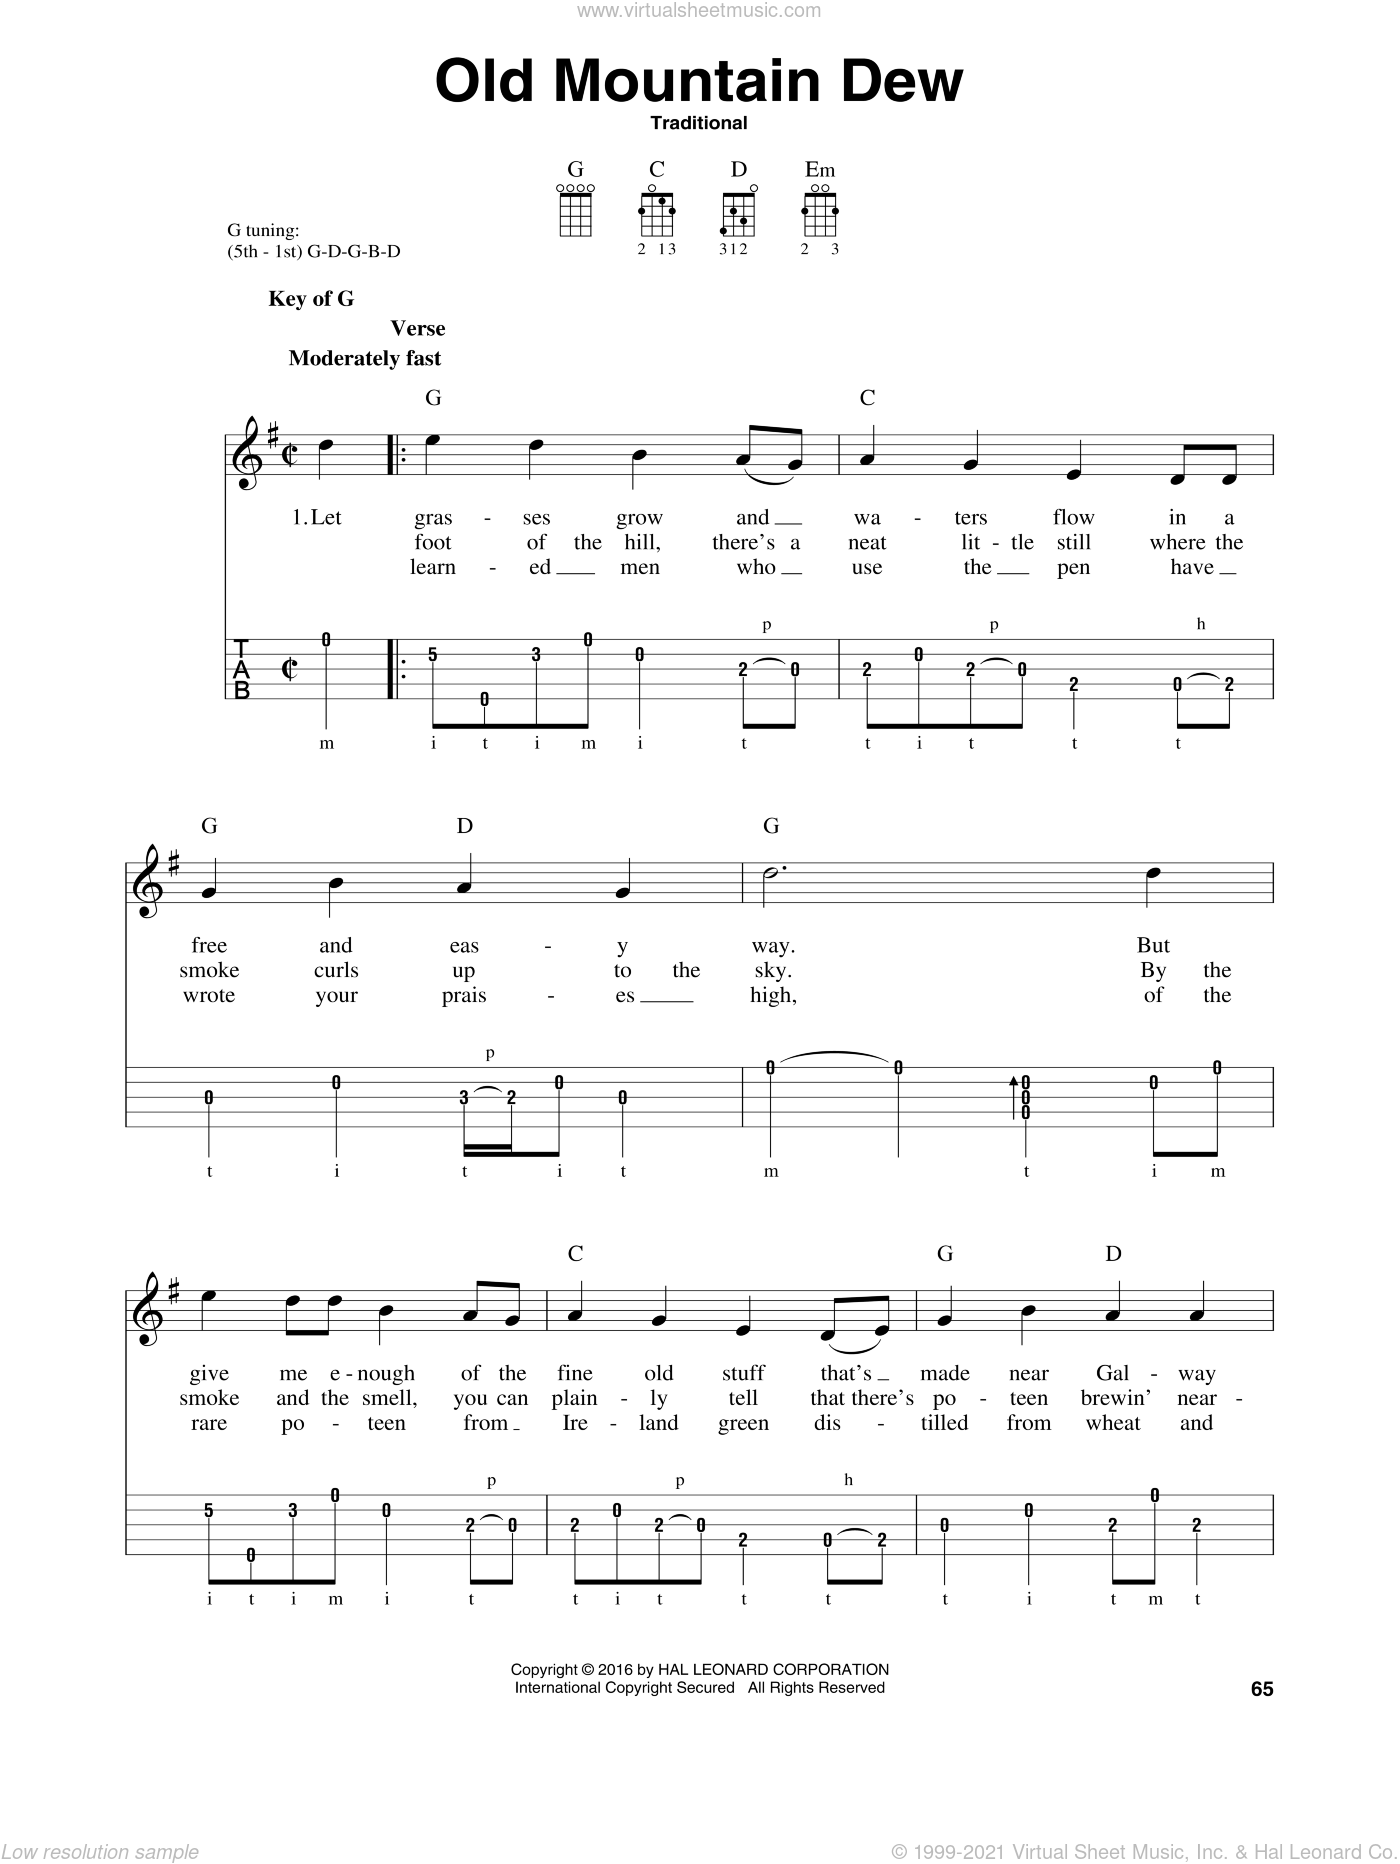 Old Mountain Dew sheet music for banjo solo, intermediate skill level